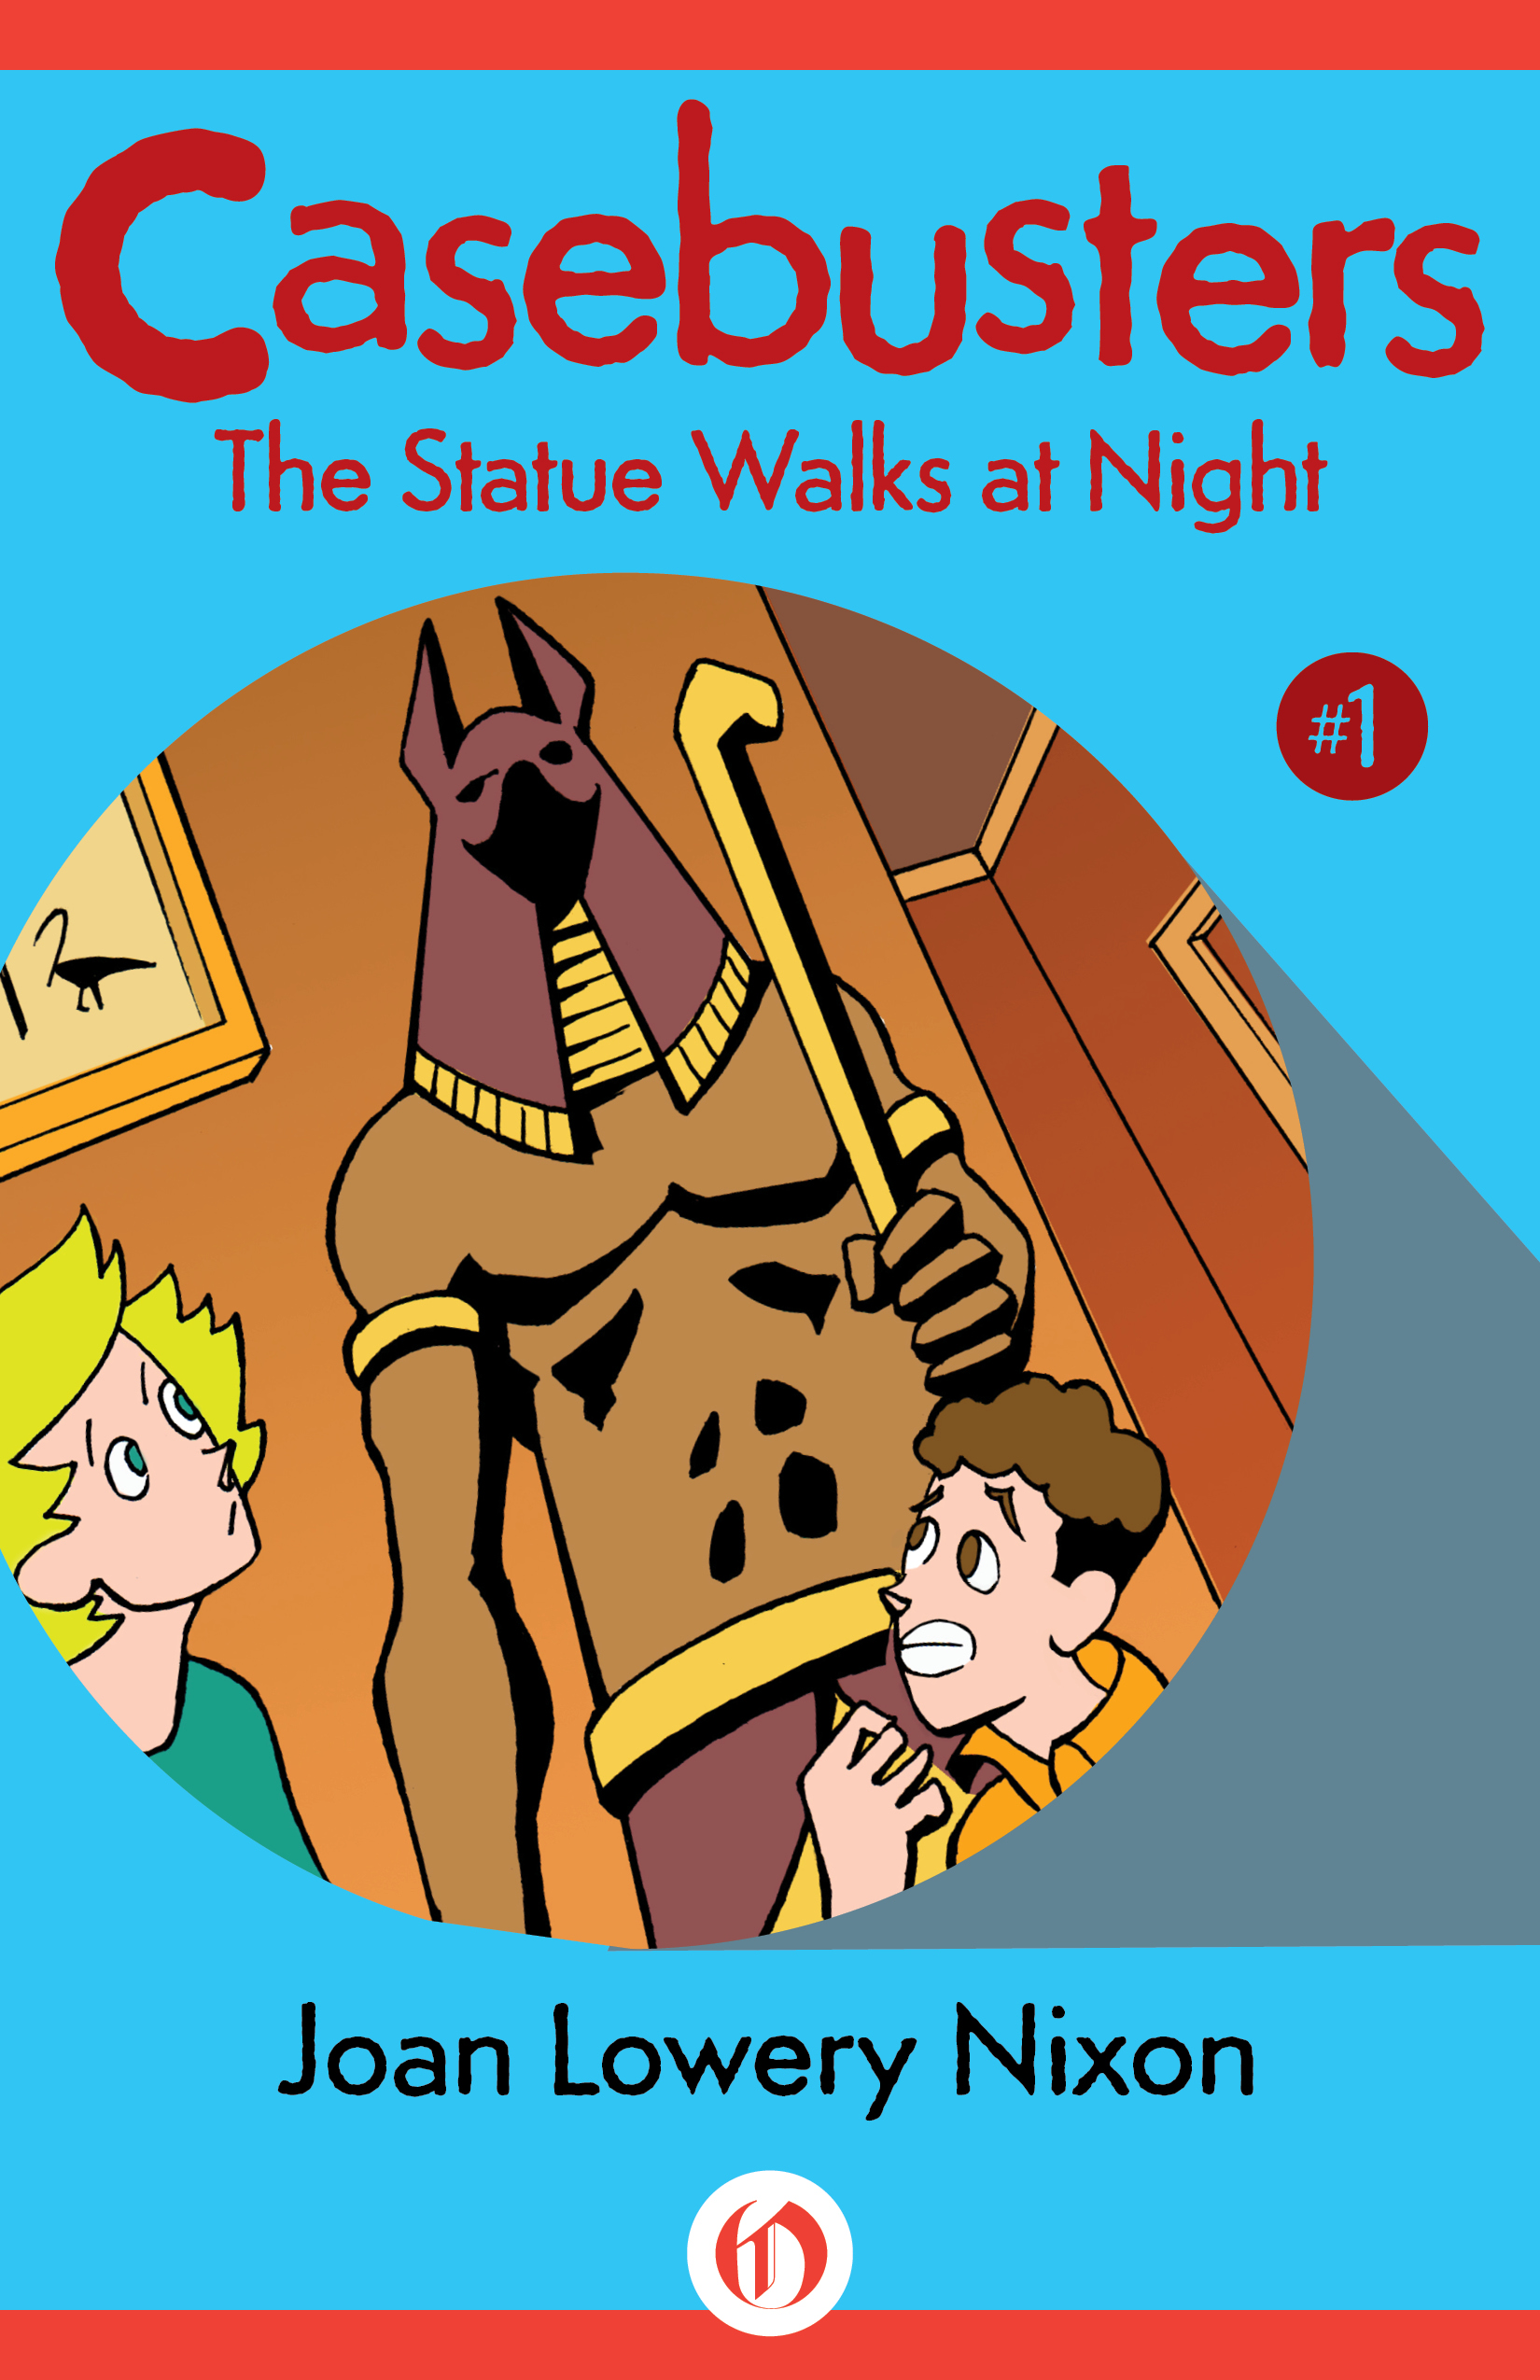 The Statue Walks at Night: Casebusters #1